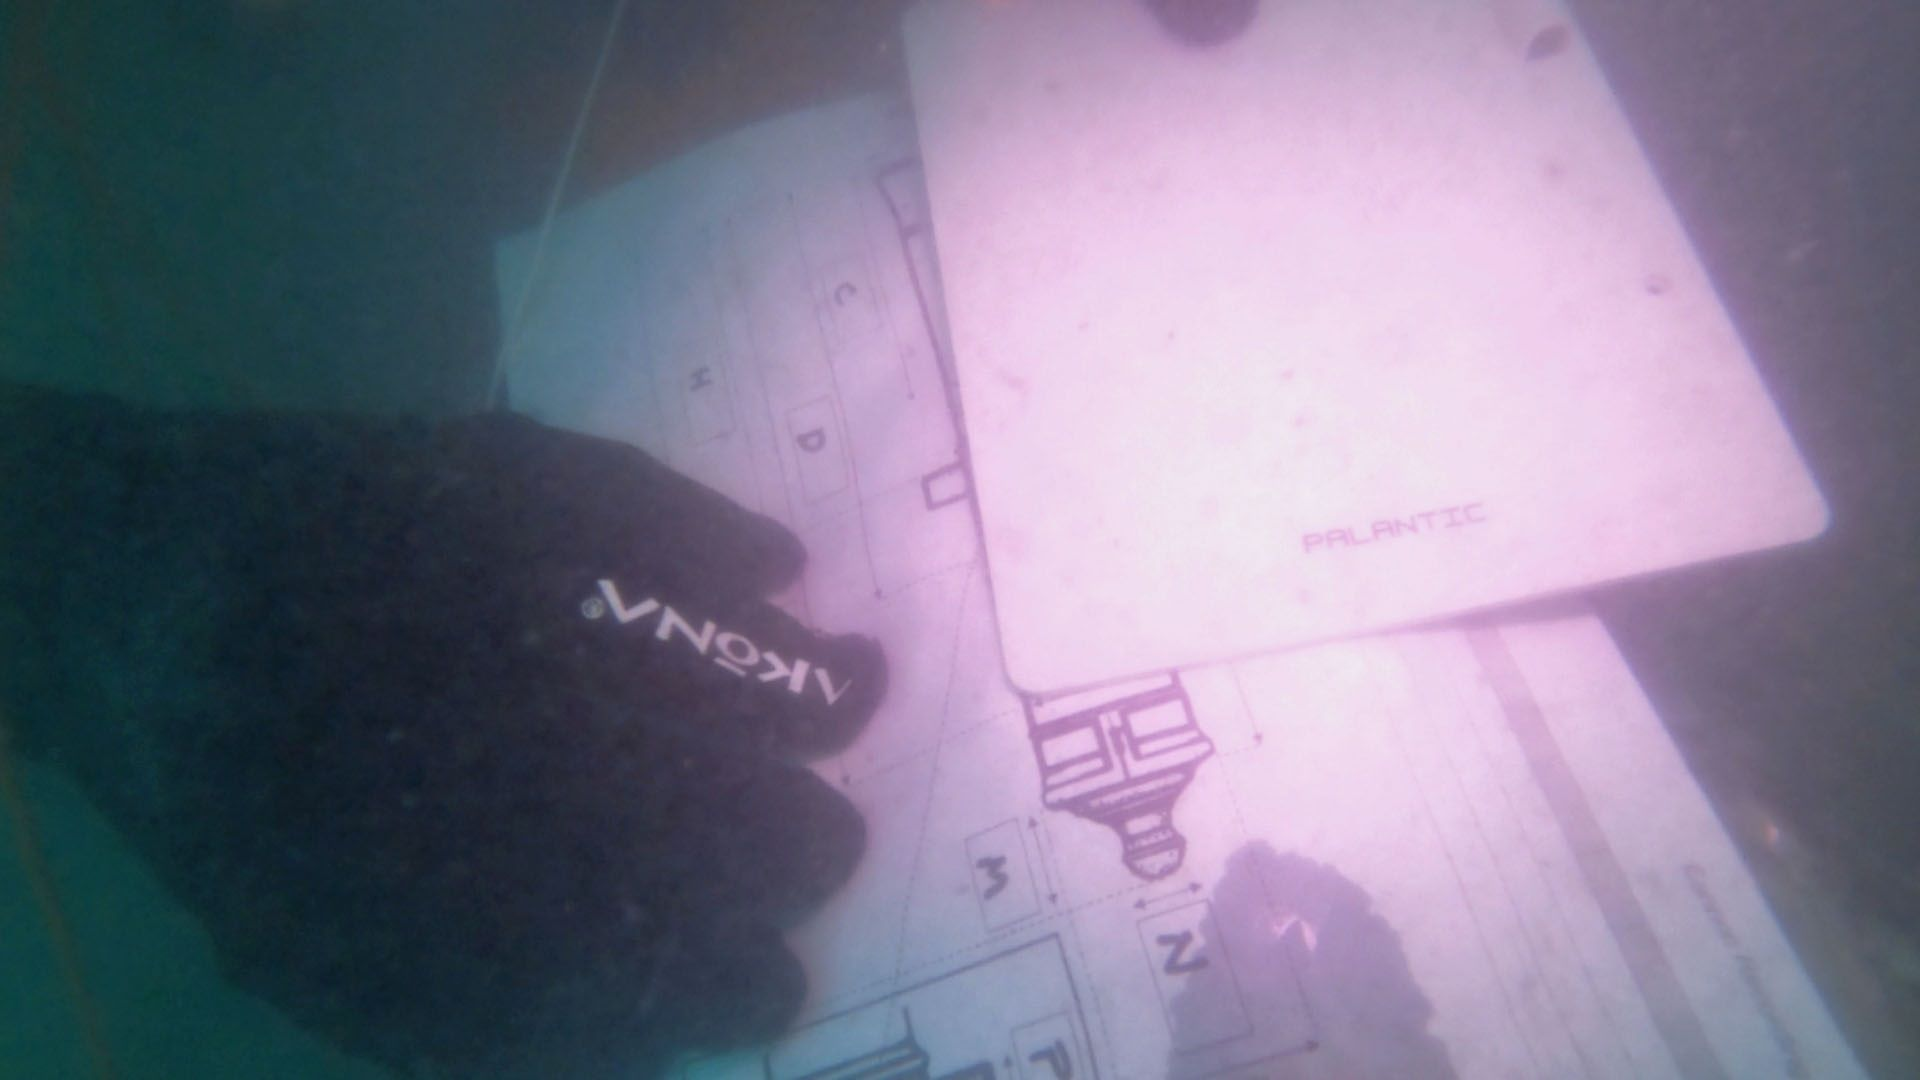 Seafarer-Exploration-8-Cannon-measurement-sheet-that-is-used-by-the-underwater-archaeology-team